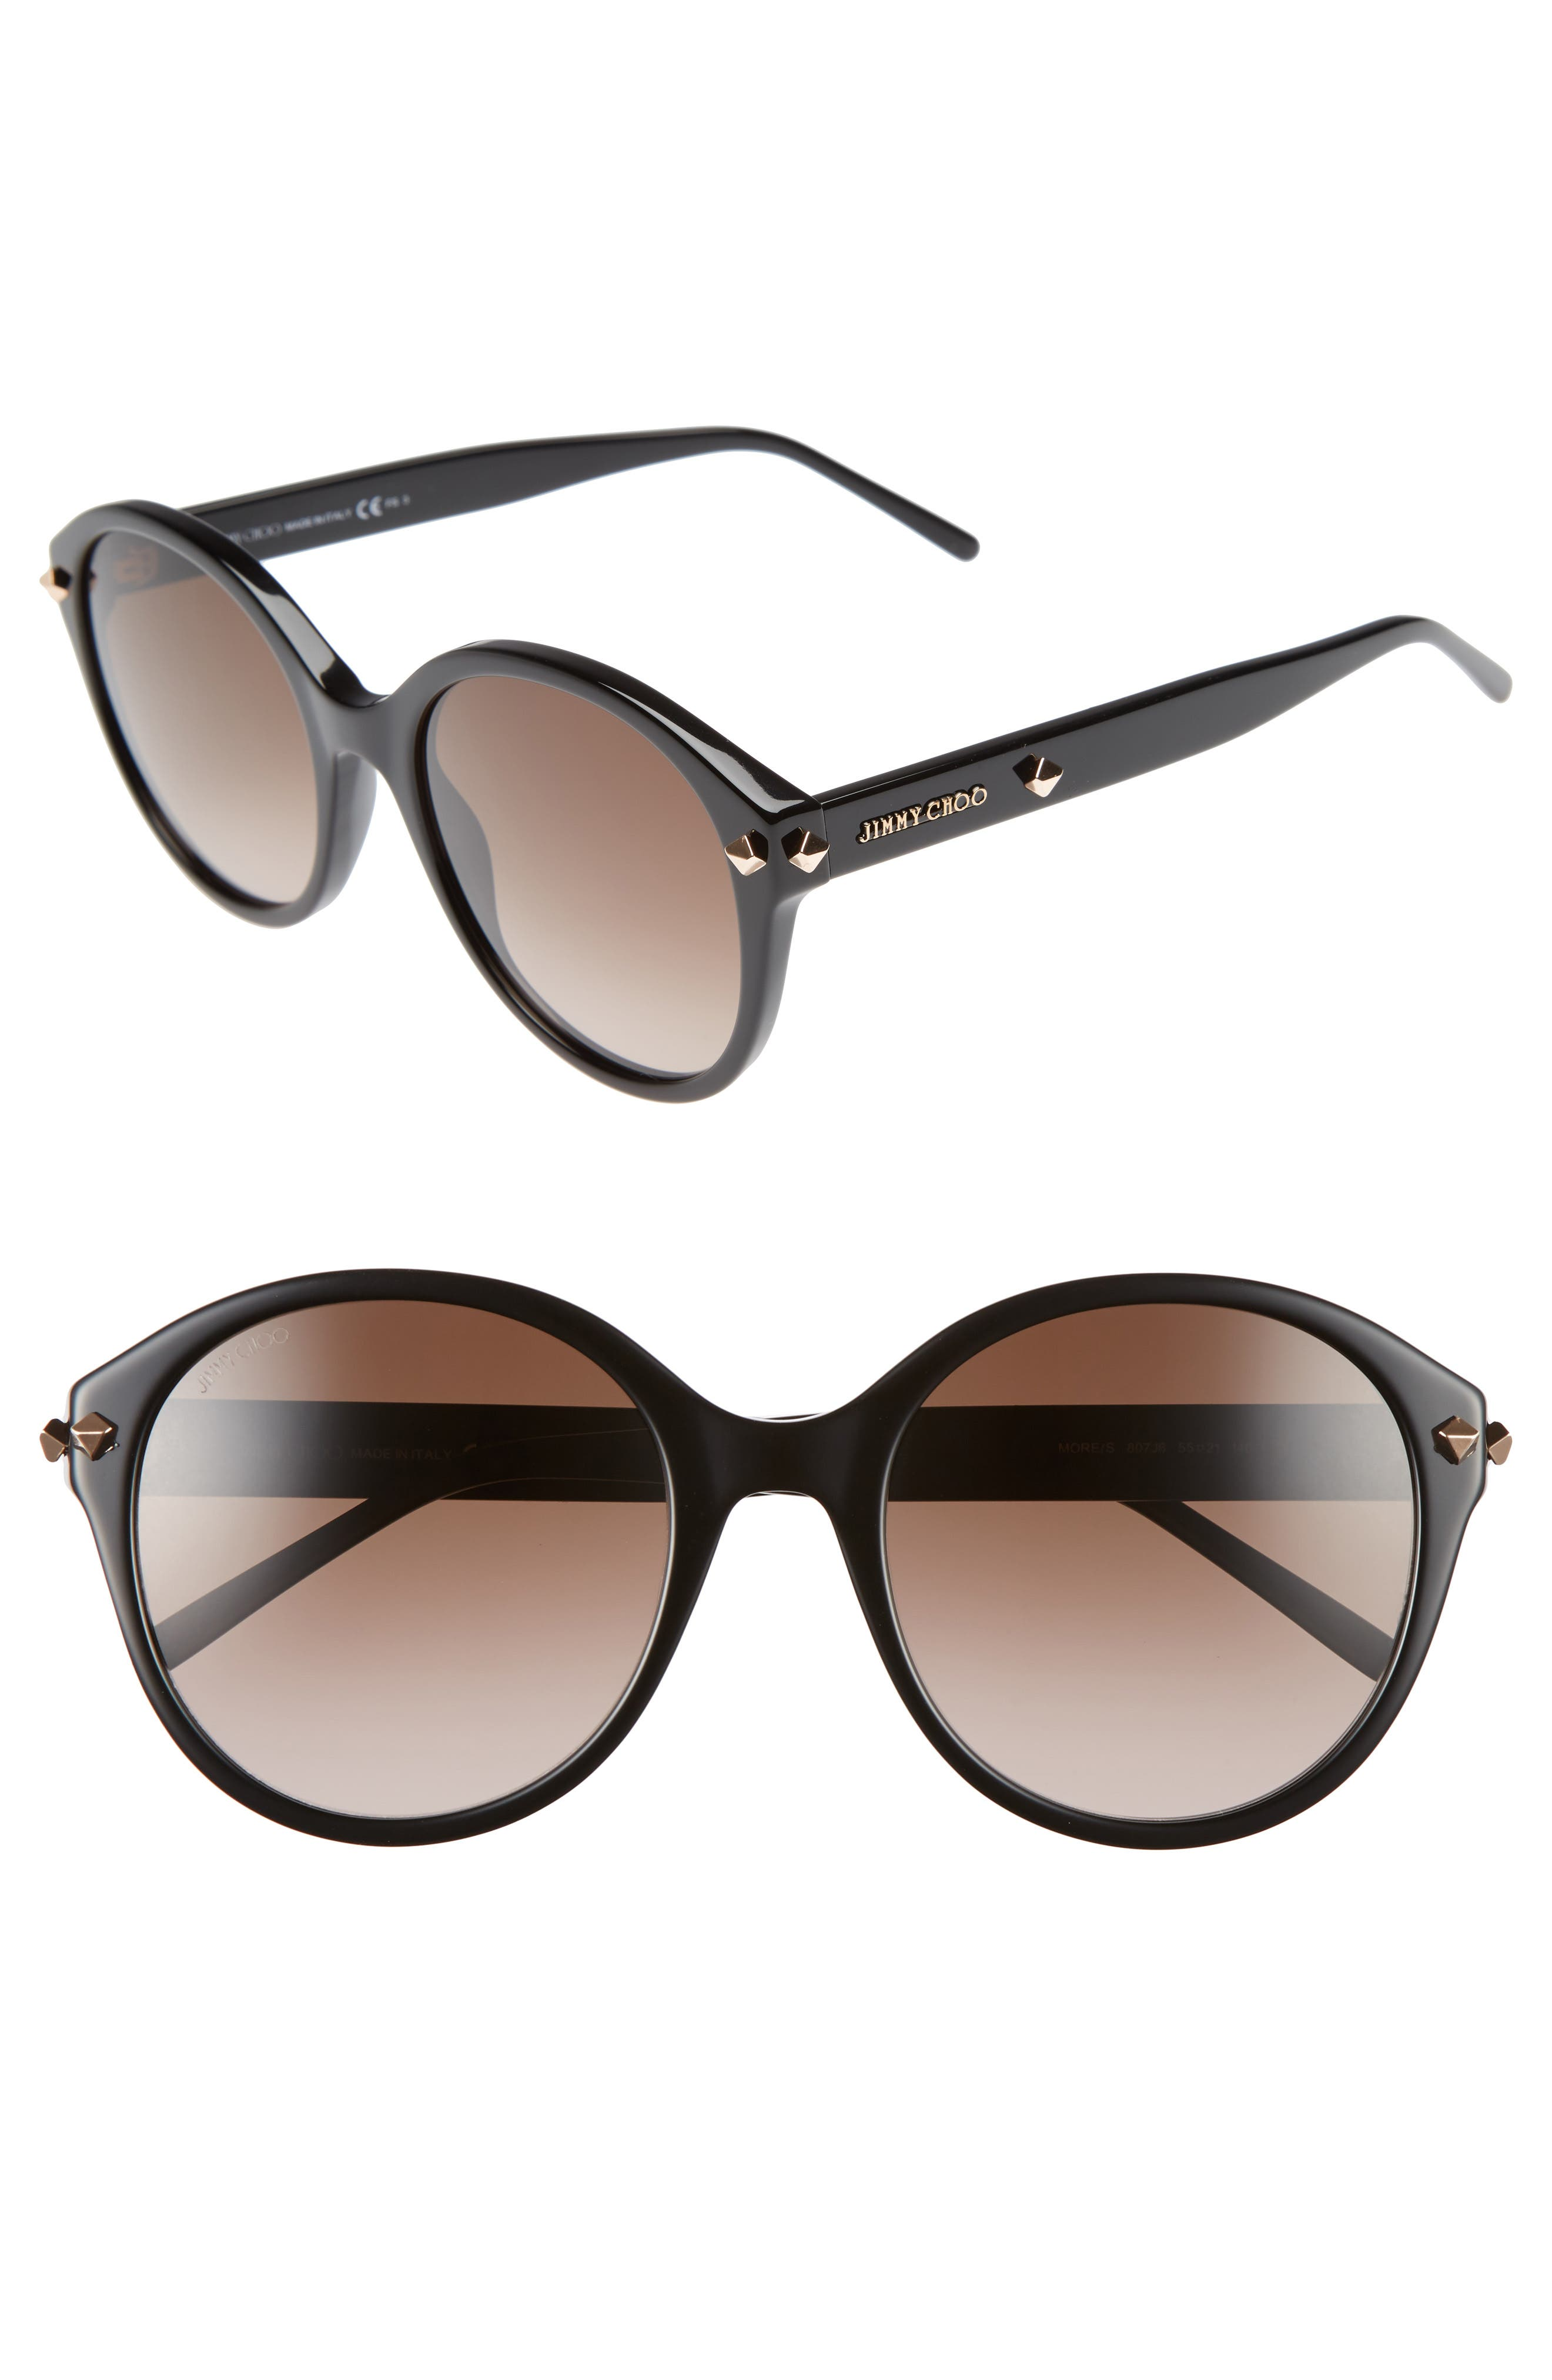 55mm Oversized Sunglasses,                             Main thumbnail 1, color,